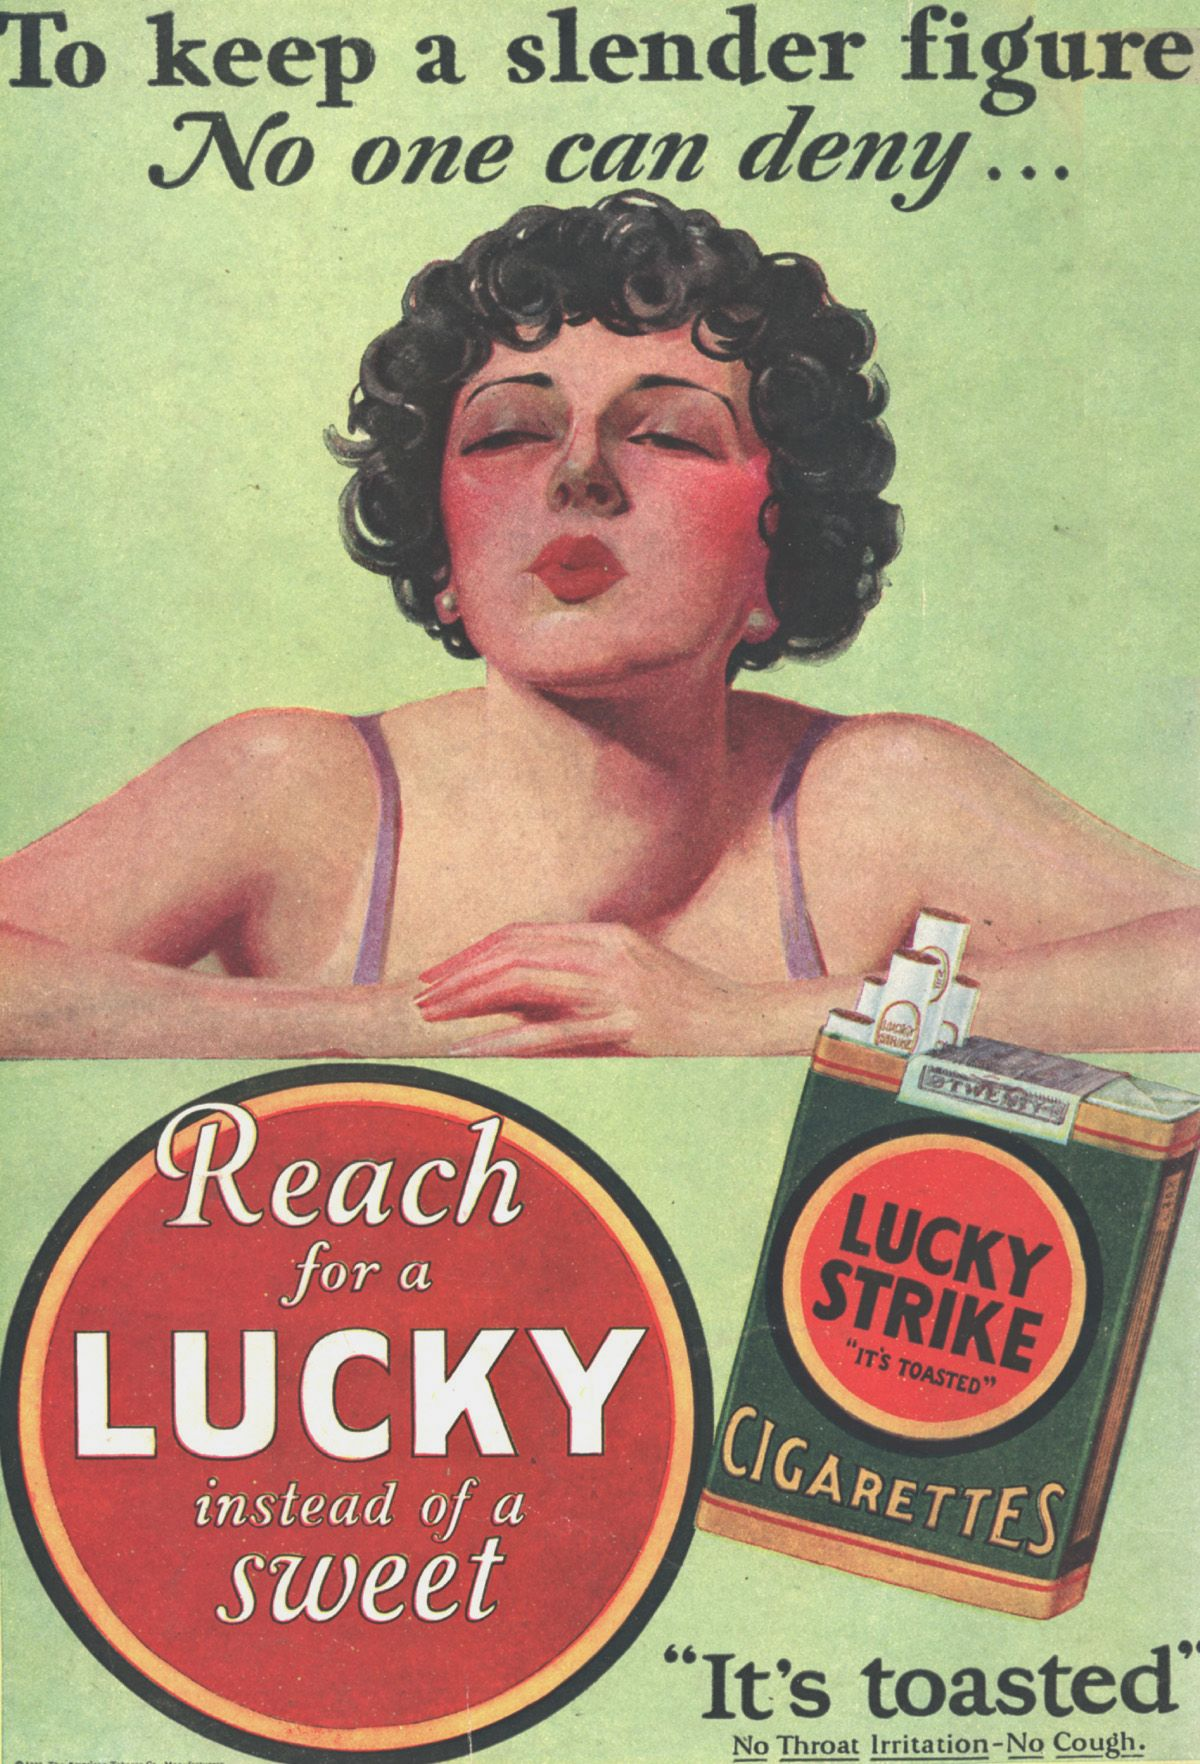 a history of tobacco advertising had changed the present advertising Cigarette advertising has had many changes from 1960 to 2000 but where tobacco companies have tried to of the entire history of cigarette advertising.